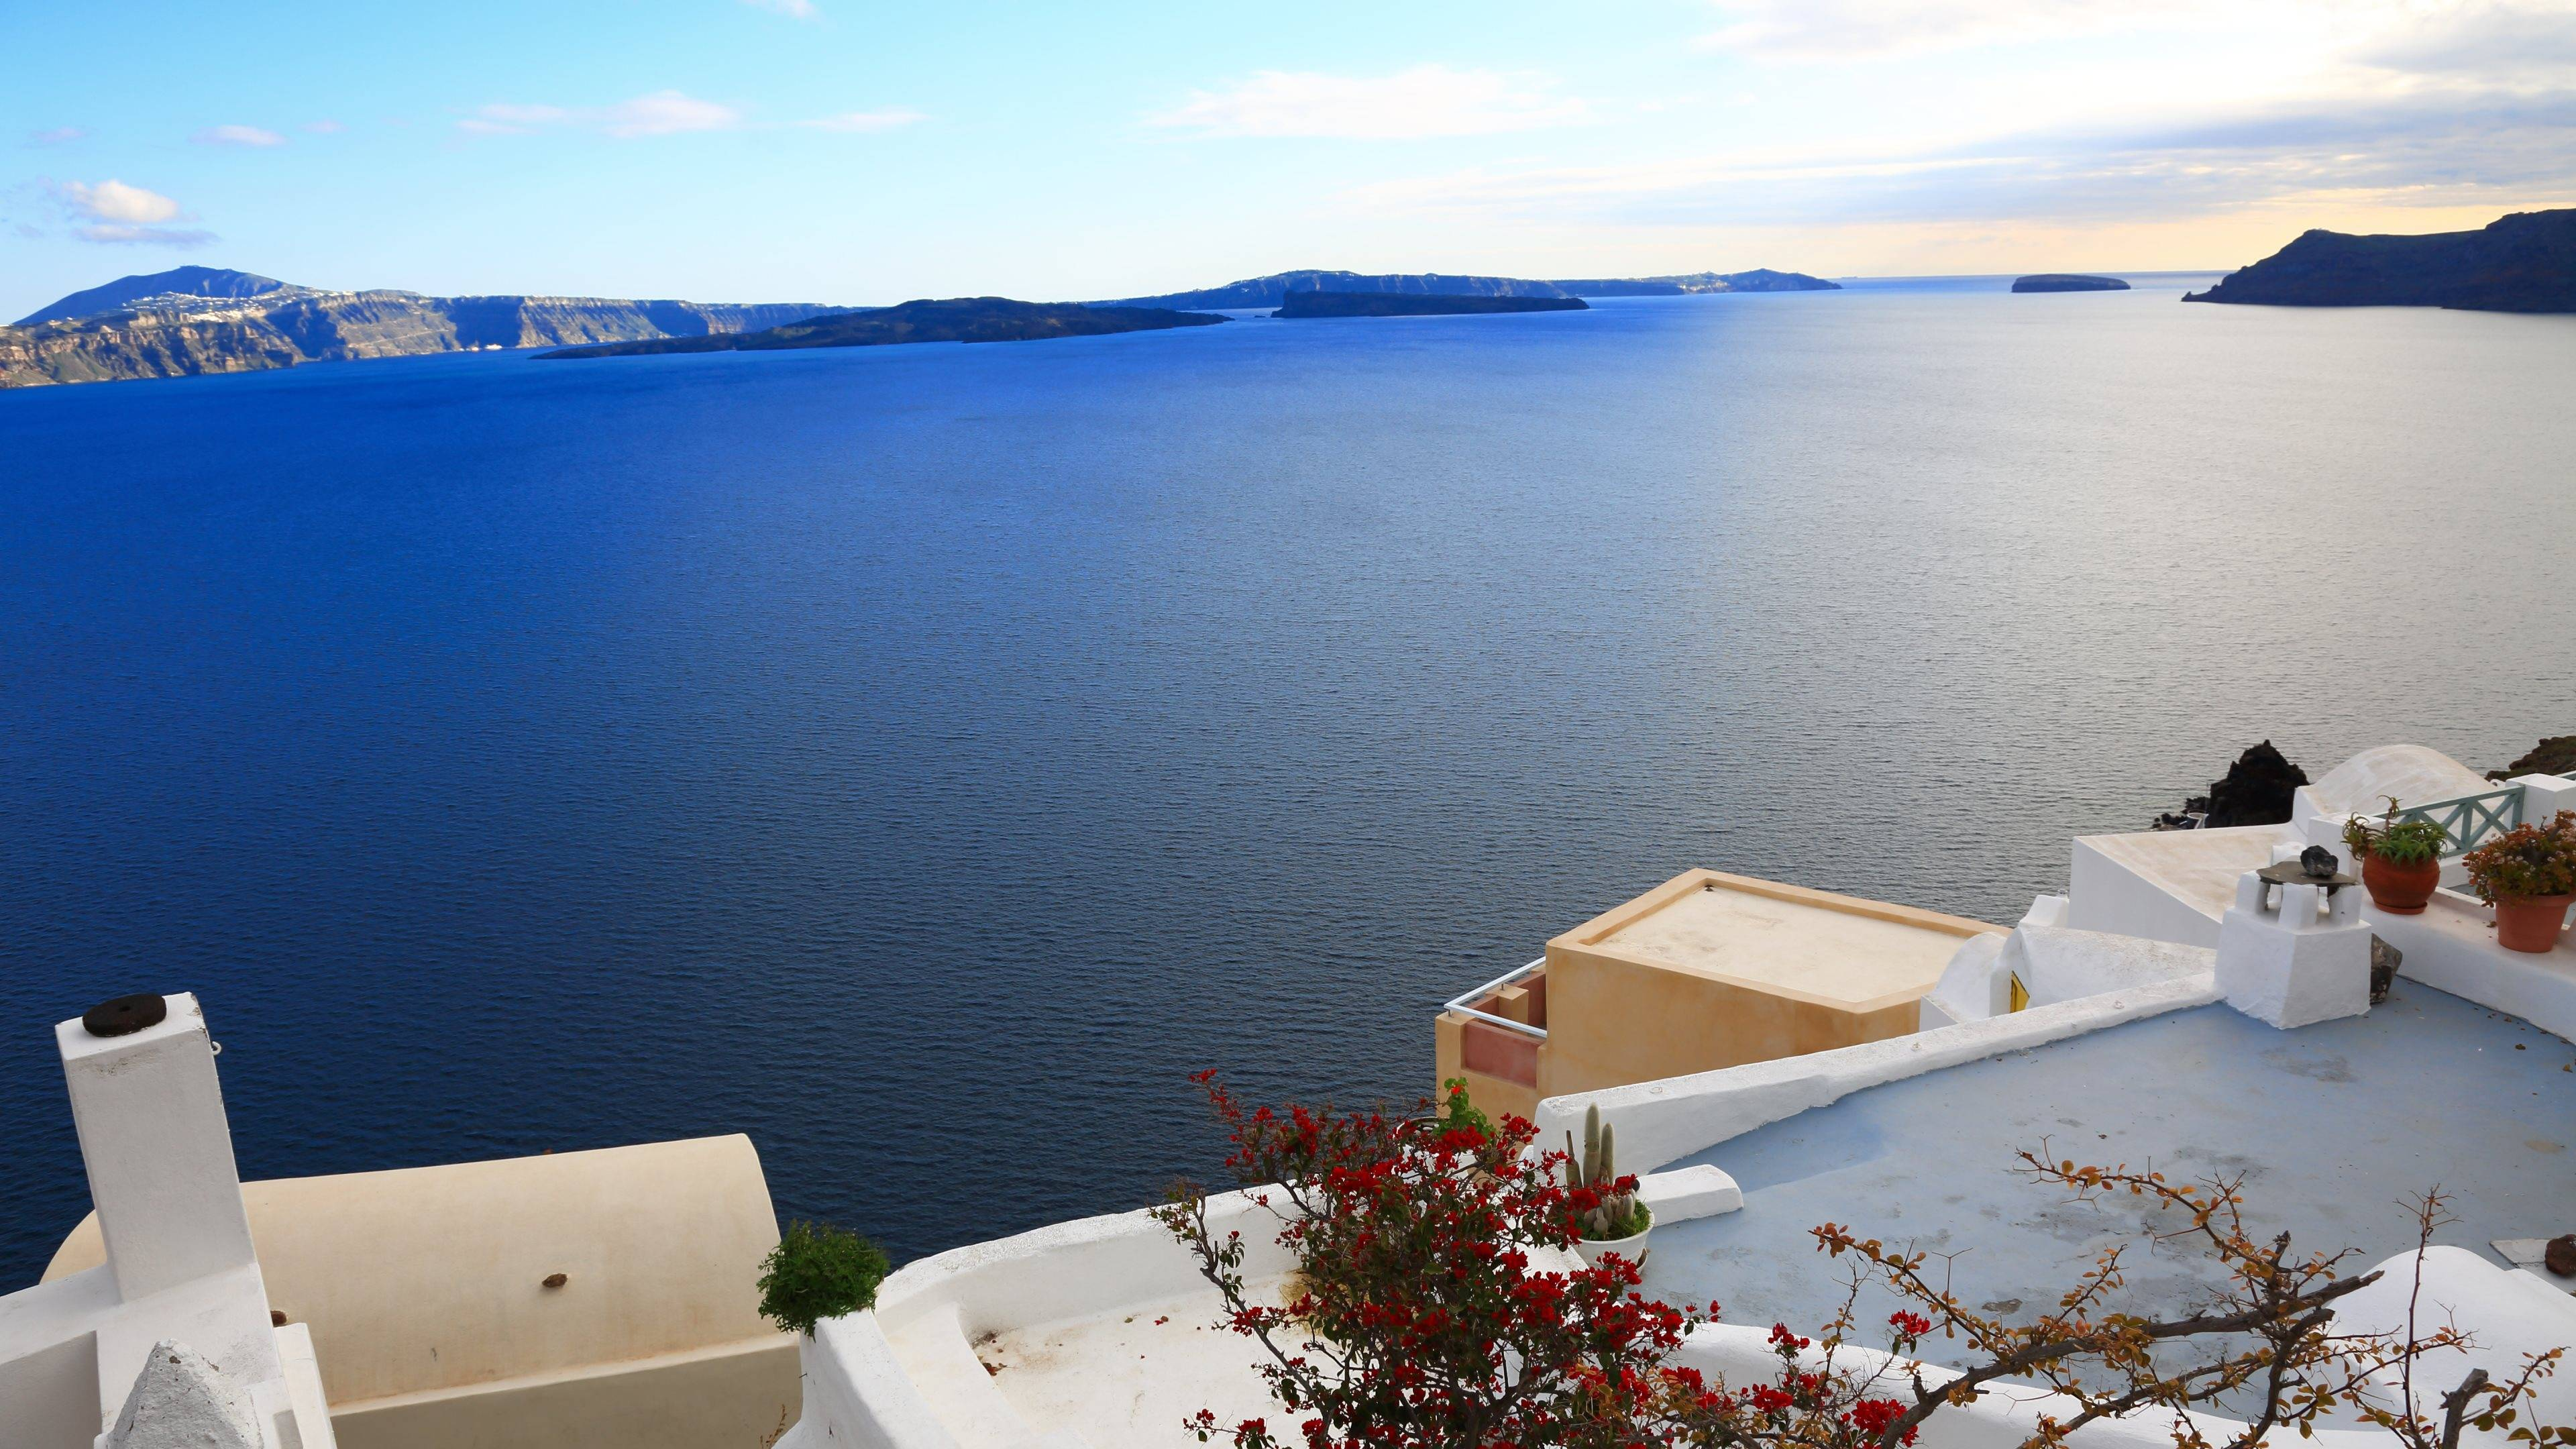 29 Santorini Wallpapers